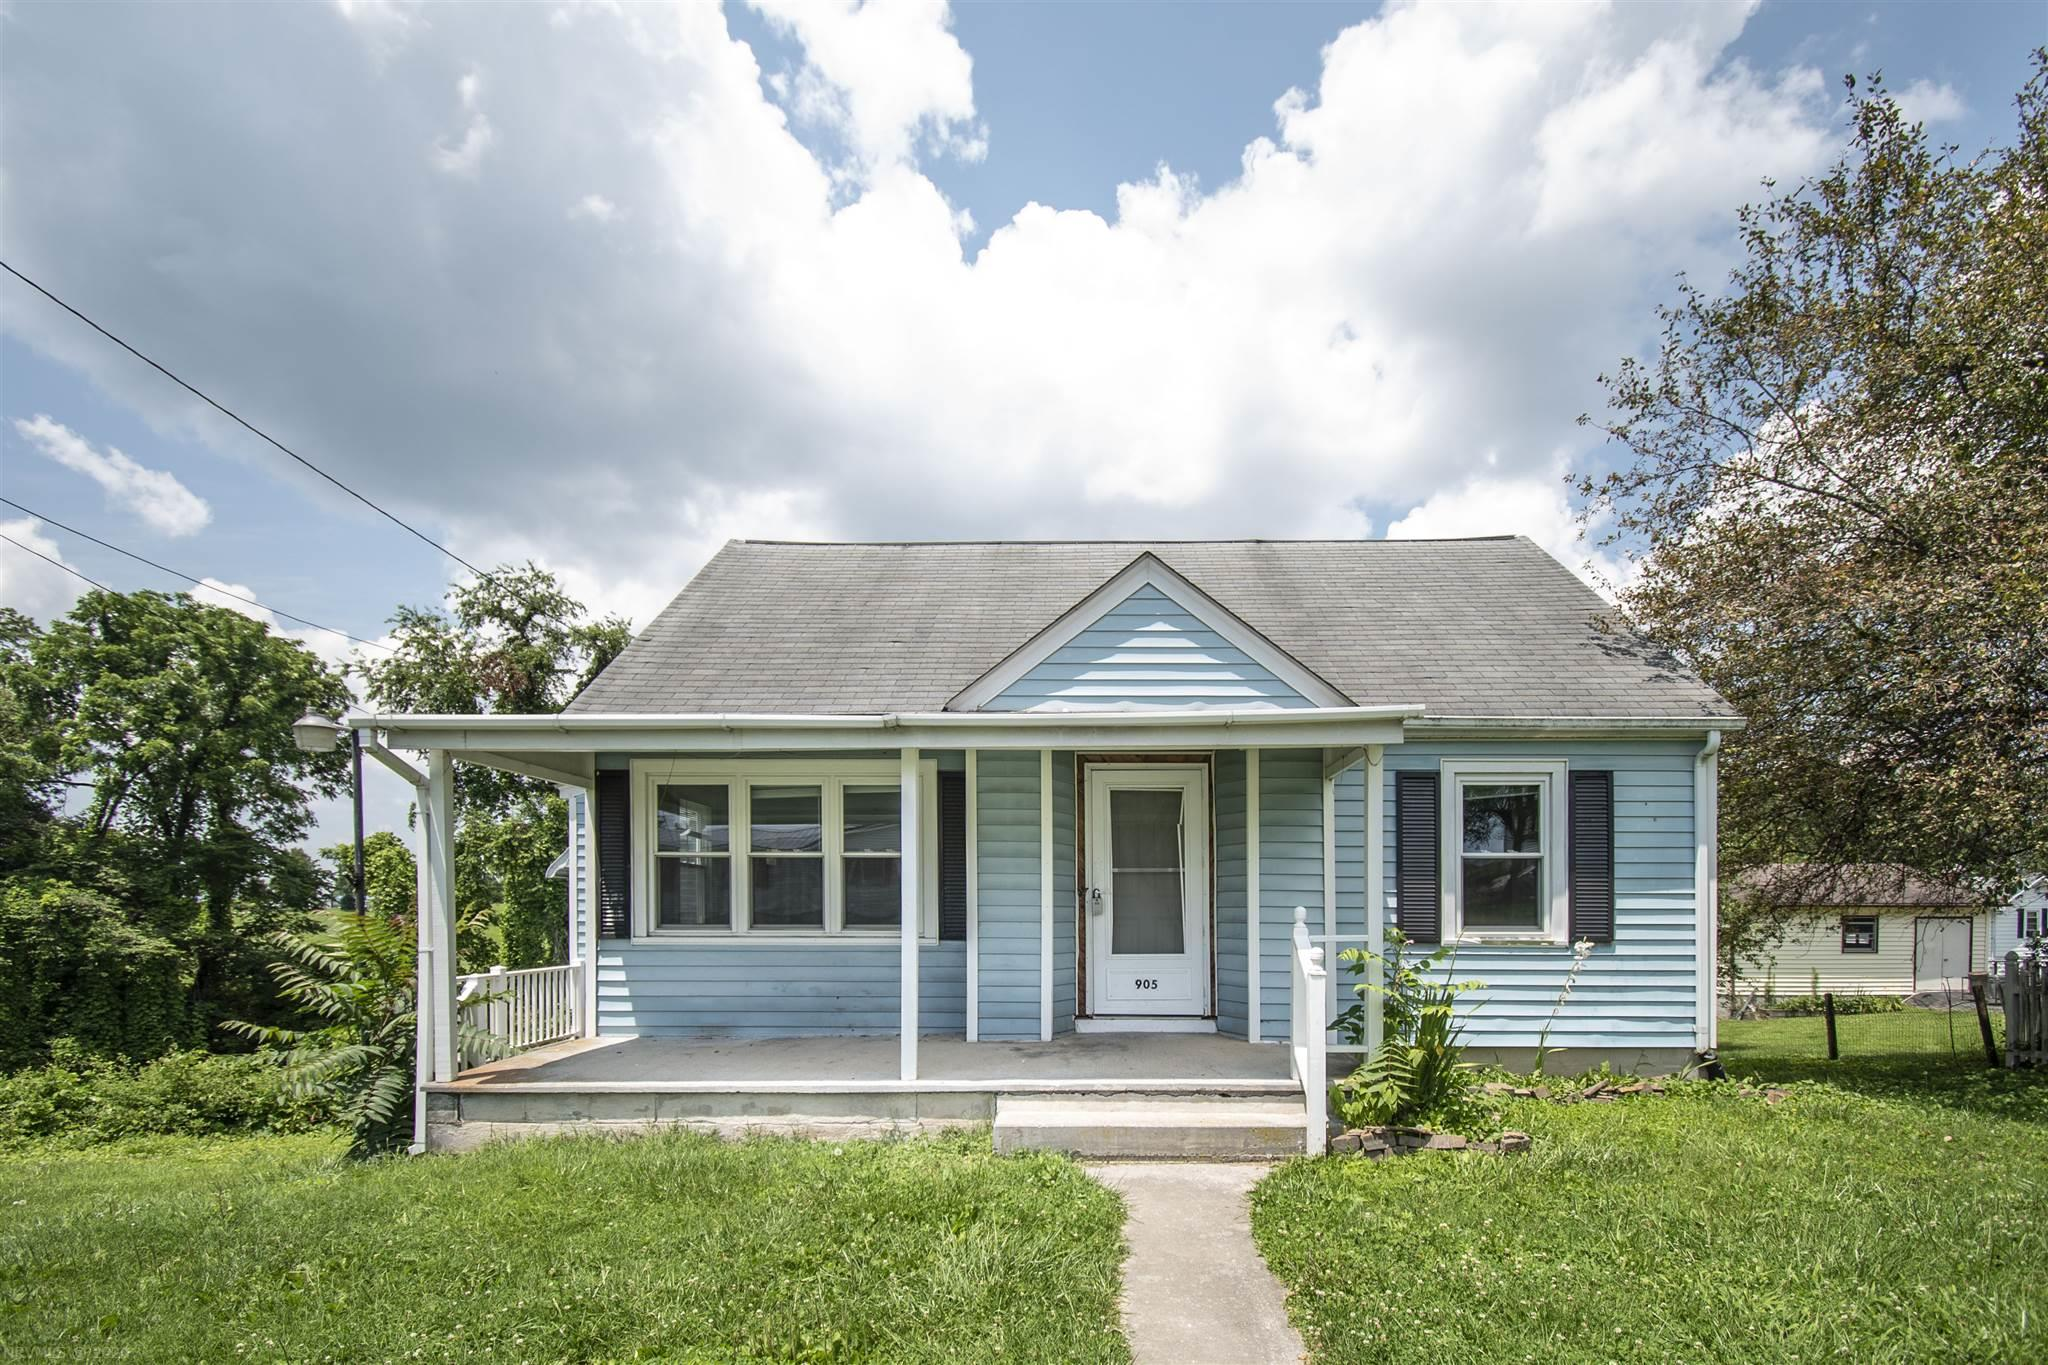 Handyman's Special with lots of Potential. Charming home with gable style roofing. Nice covered porch and finished basement.